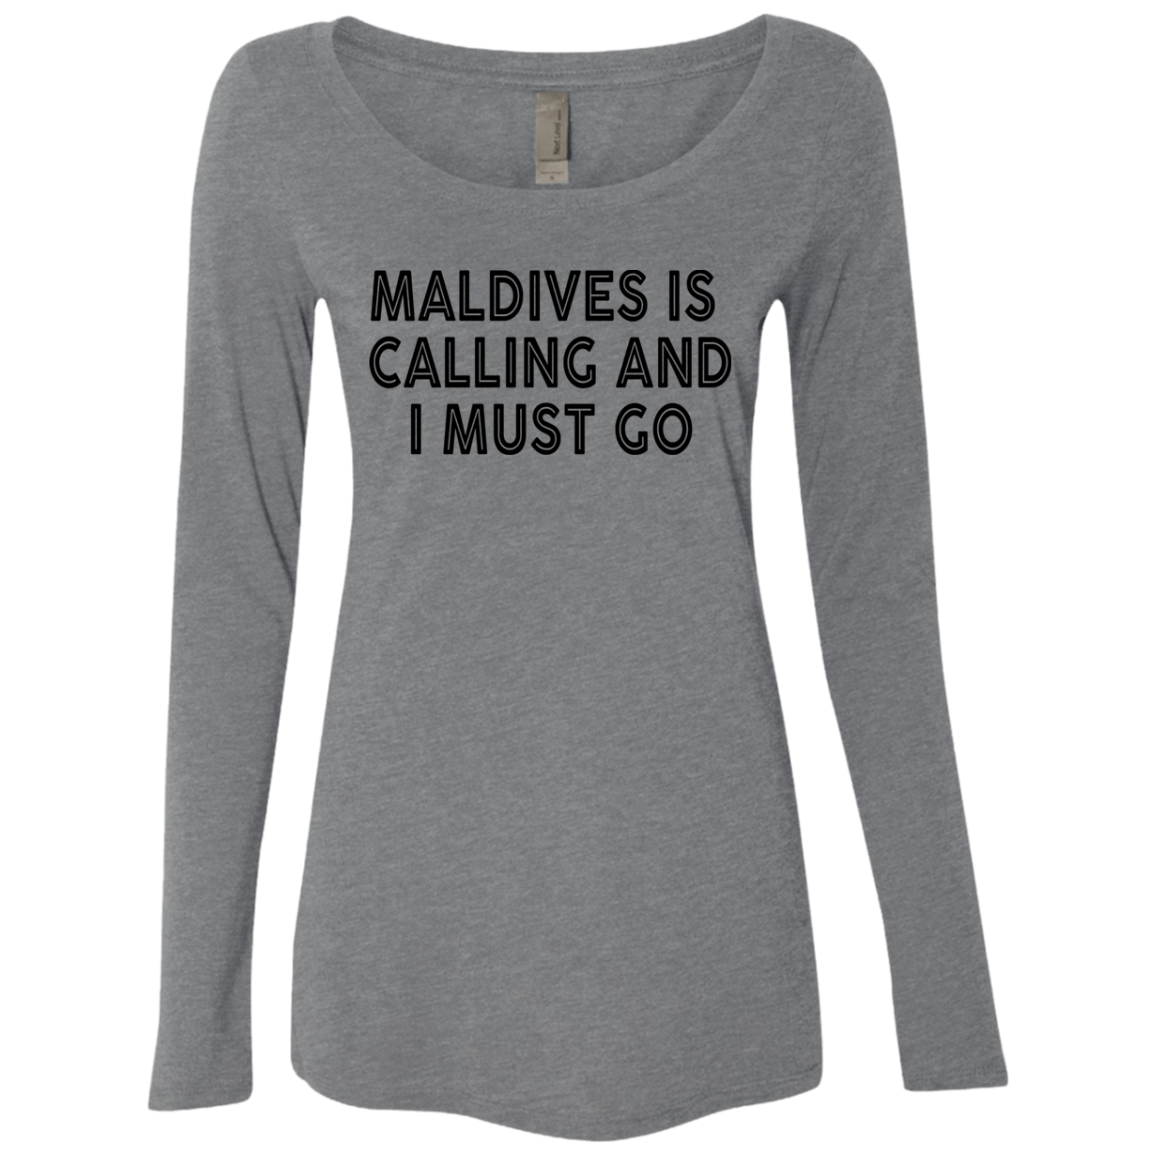 Maldives Is Calling And I Must Go Women's Long Sleeve Tee